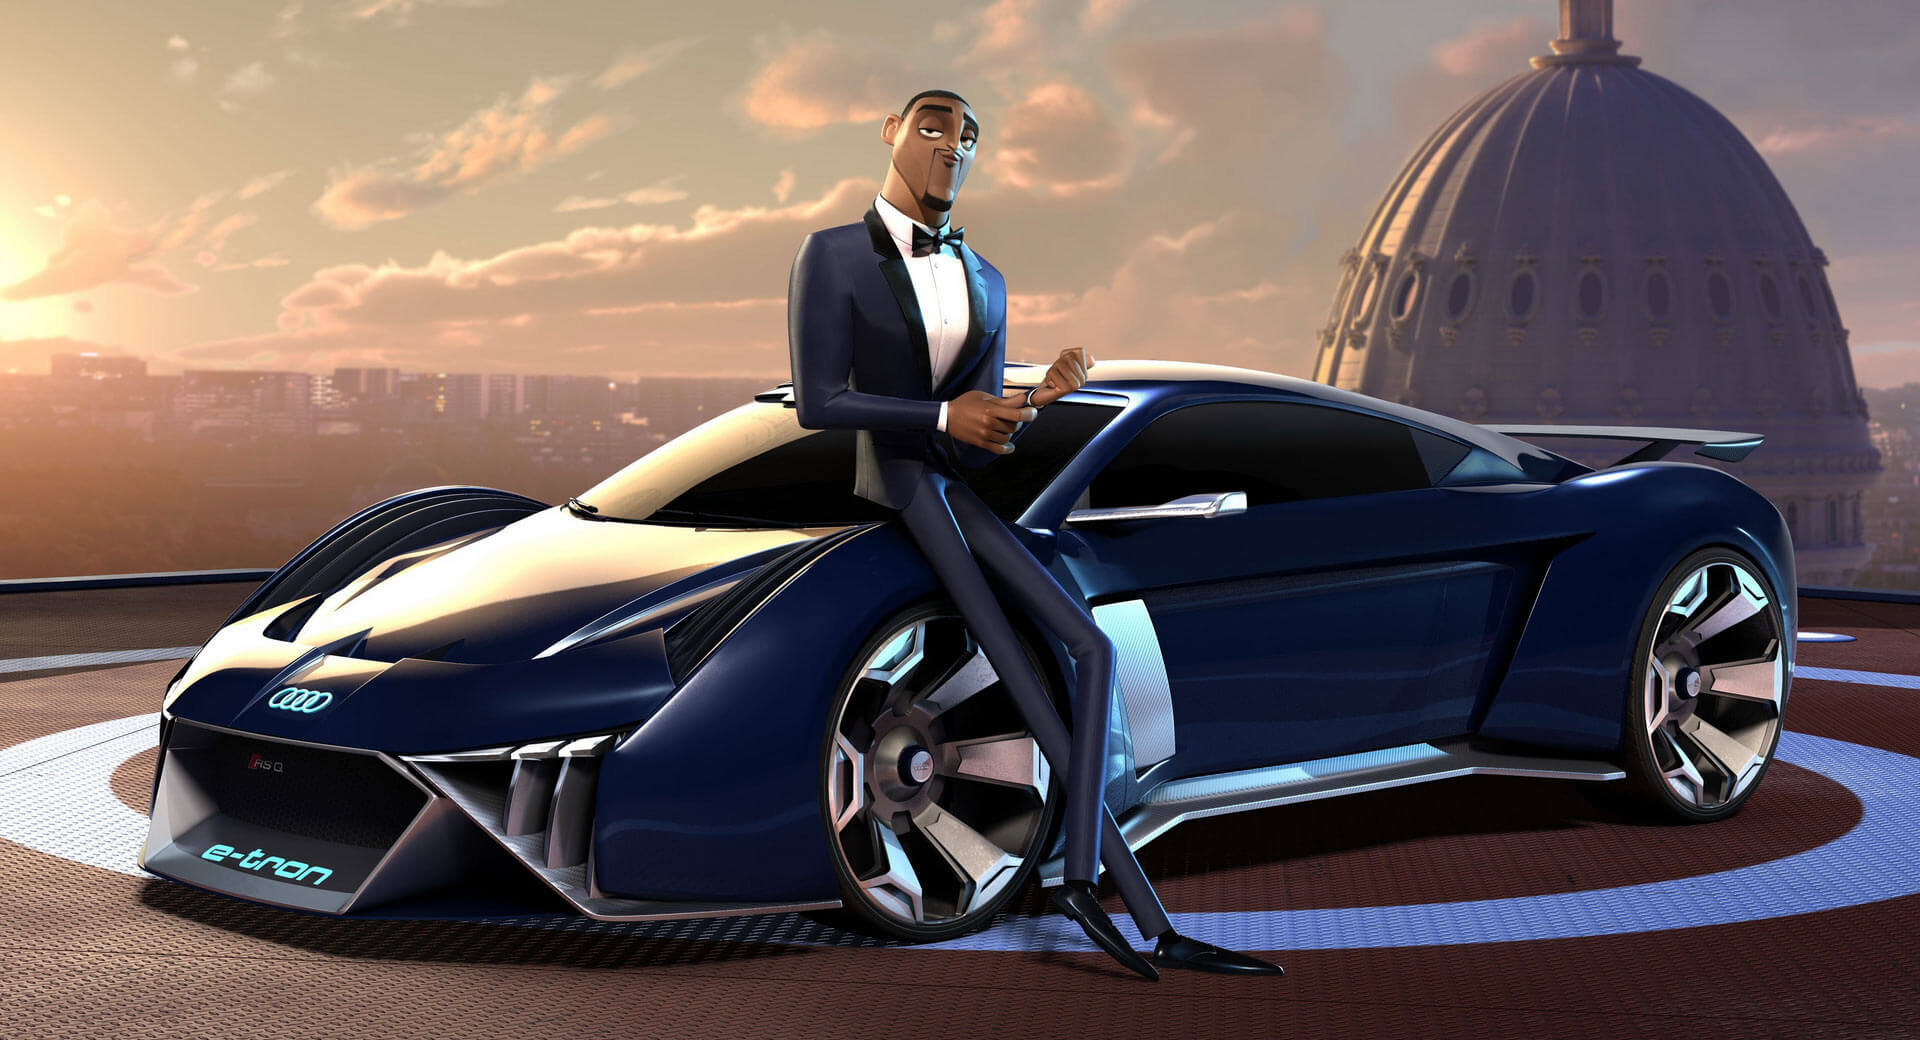 Audi Rsq E Tron Was Designed For Will Smith In Spies In